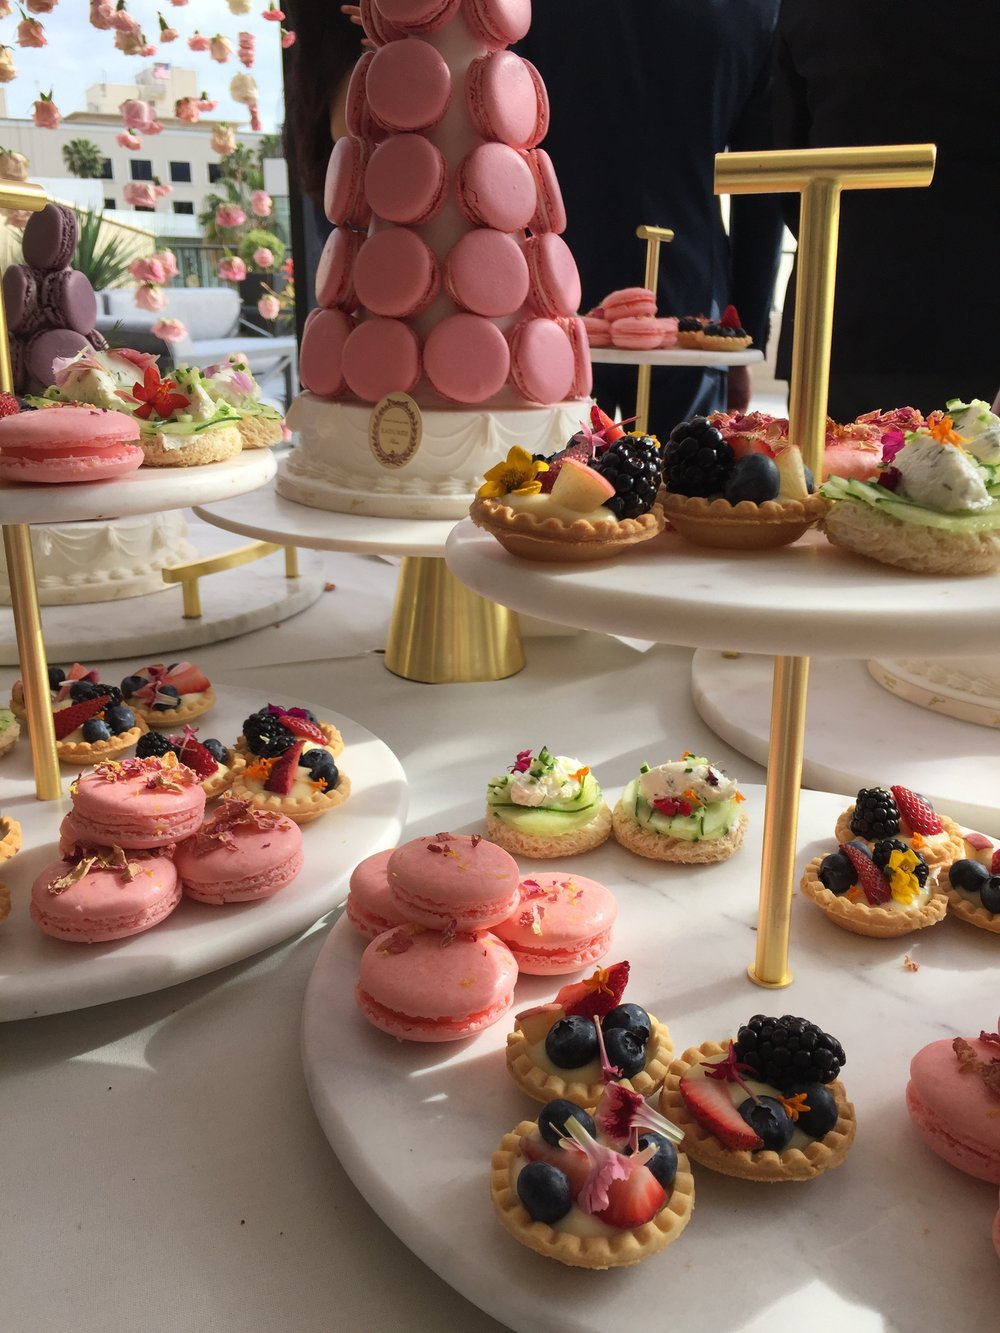 Delectable pastries